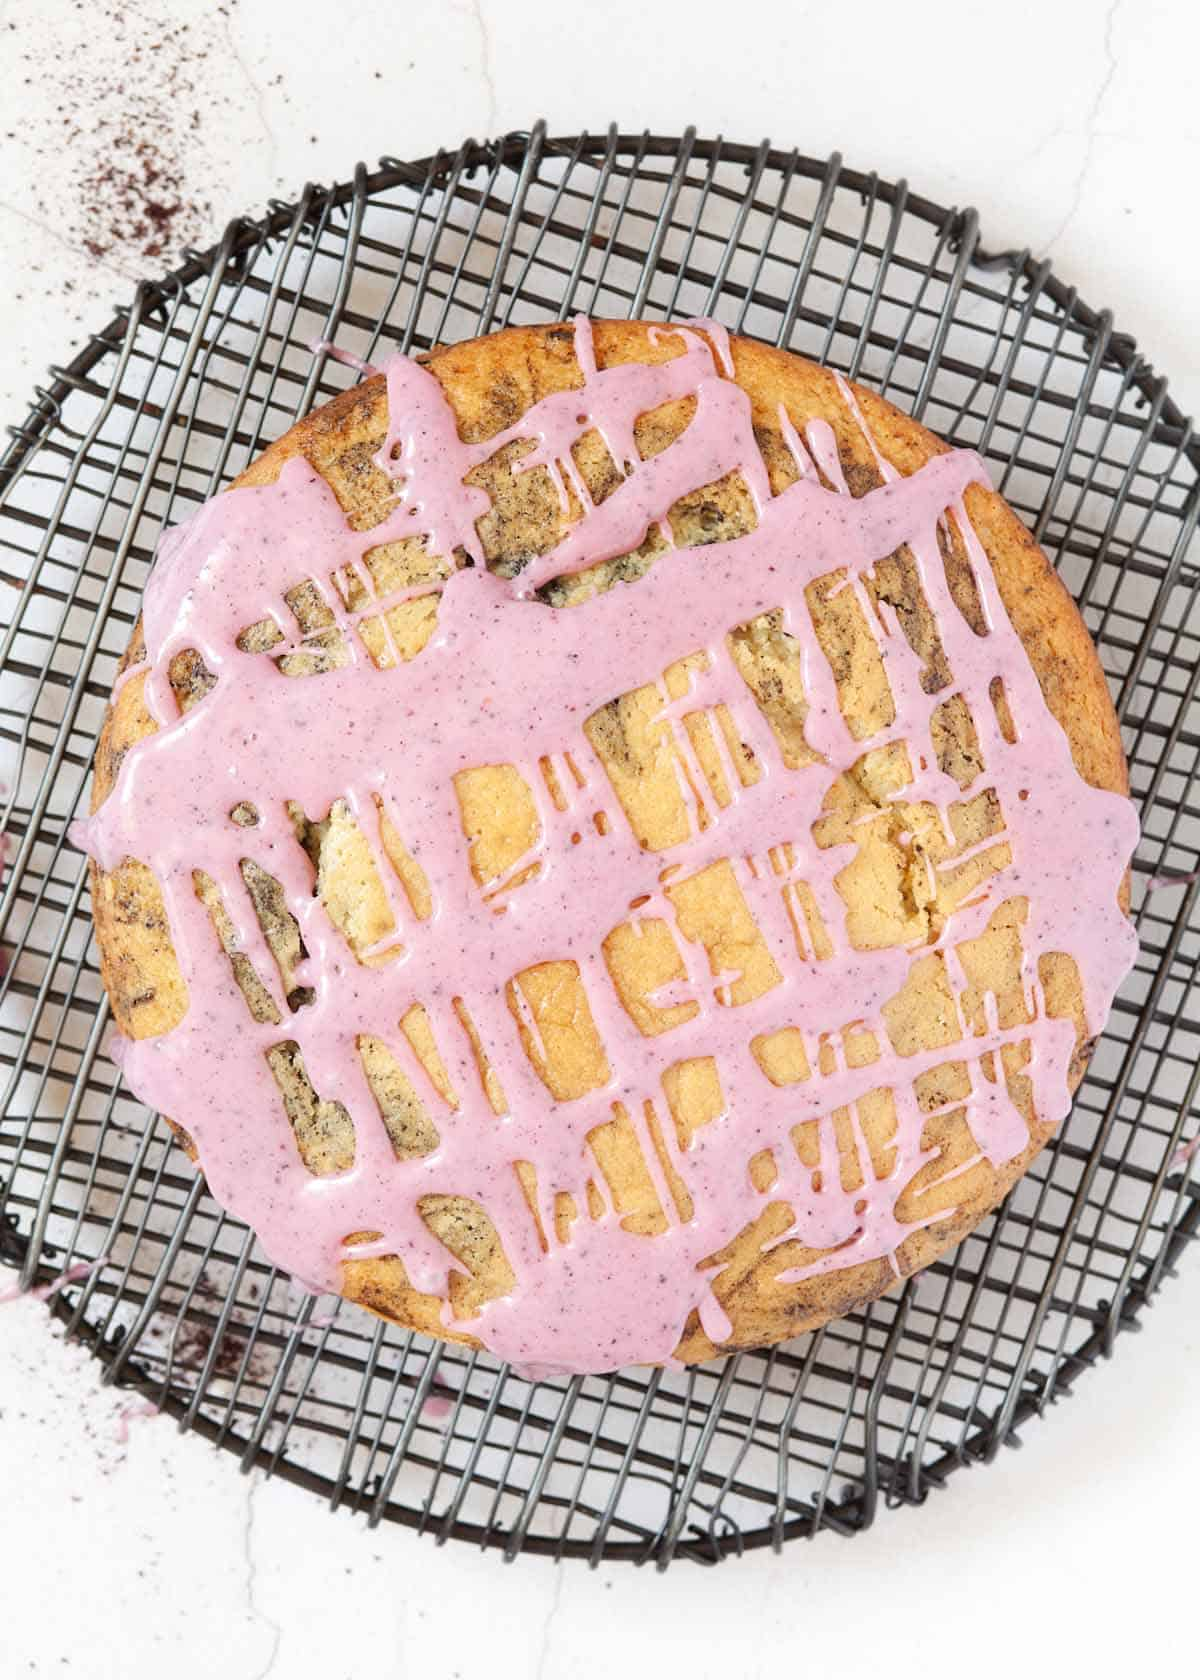 A round sponge cake topped with pink/ purple water icing in a criss-cross design